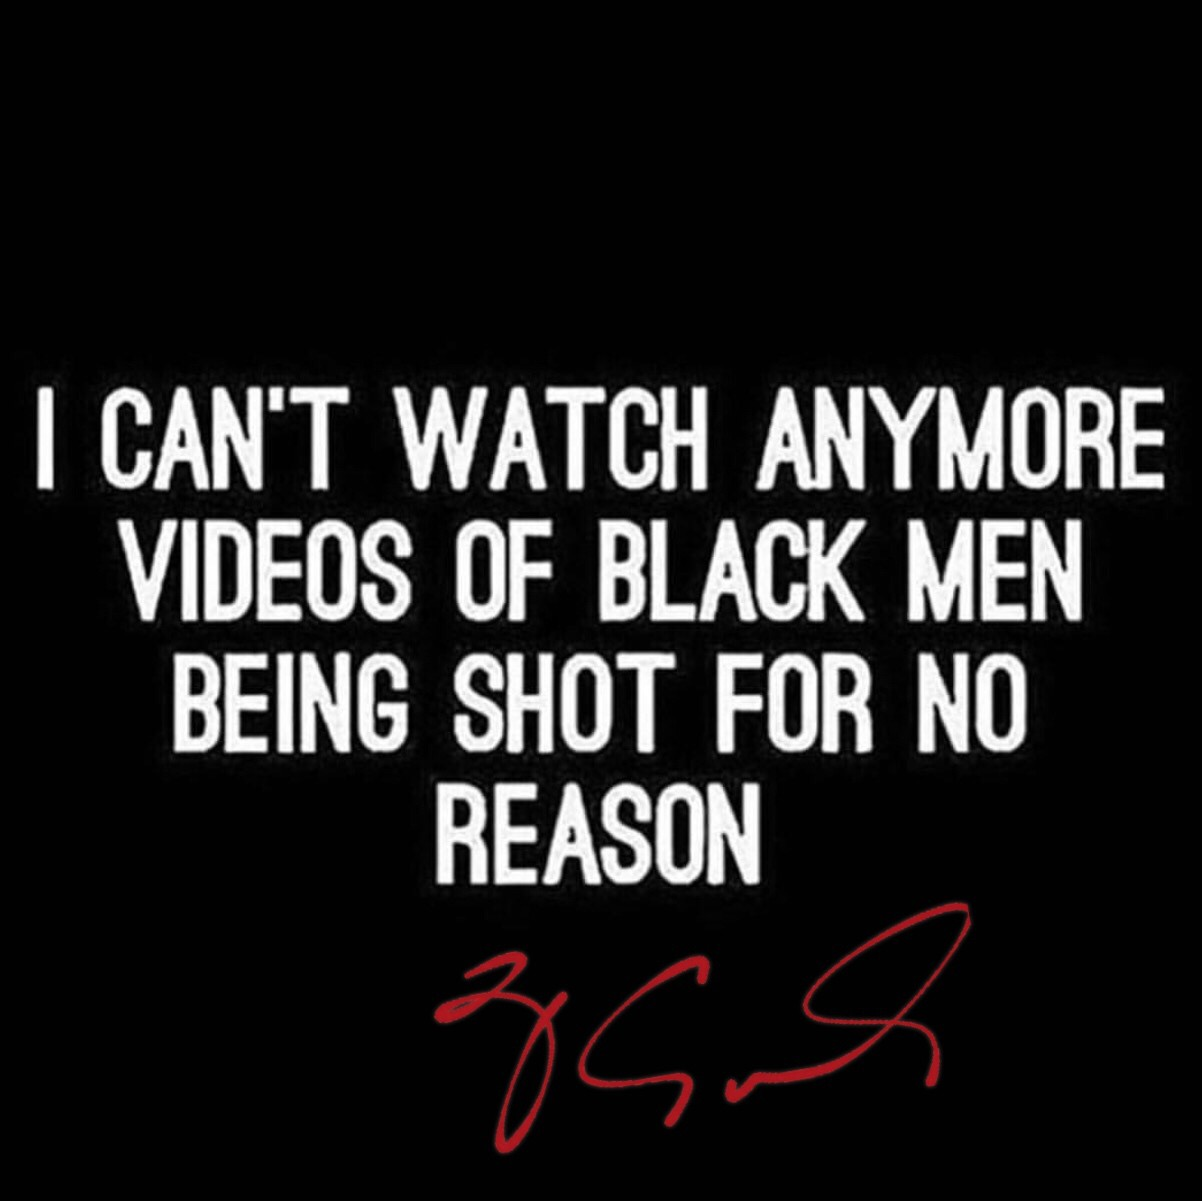 Watch Black Men Being Shot for No Reason _ Tyrone Smith _ Black Lives Matter